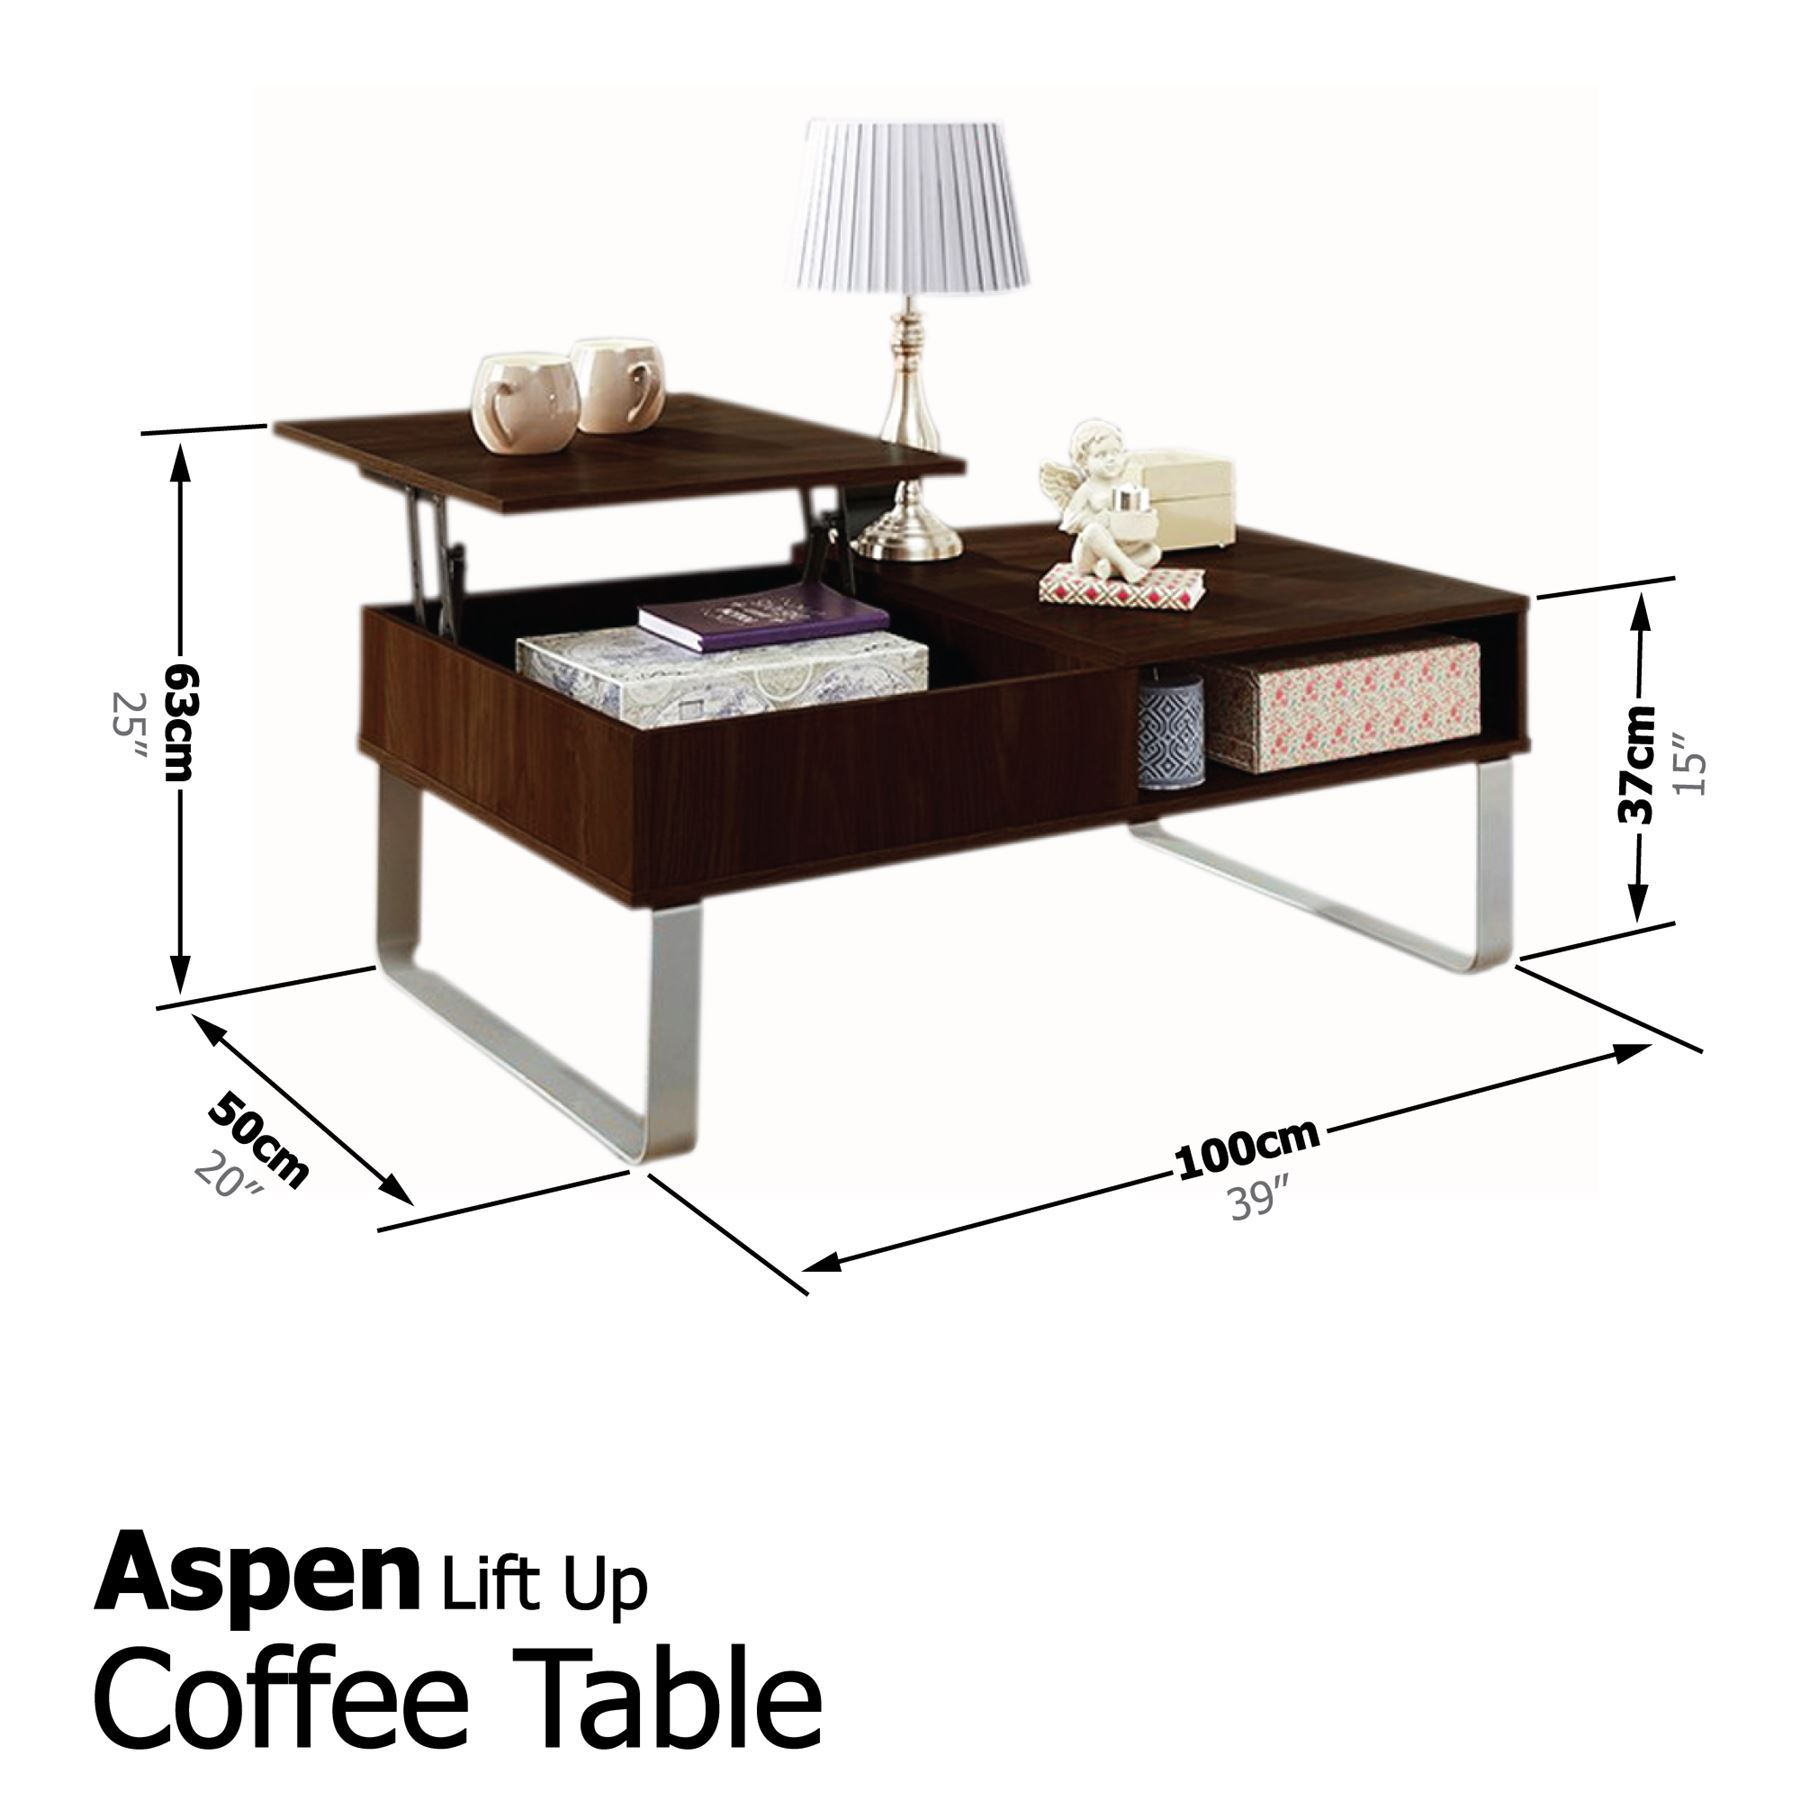 Coffee Table That Lifts Up Elegant Table Outdoor Picture More Detailed Picture About Lift Up